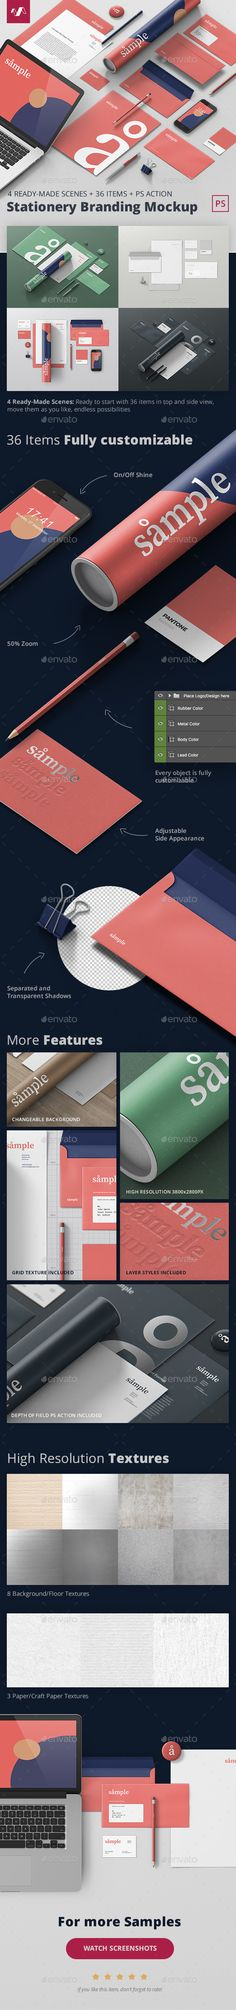 Pre-made PSD scenes including 36 items in top and side view. Easy to use and fully customizable to its tiniest detail. #ad #a4 #mockup #generator #stationery #branding #businesscard #letterhead #envelope #identity #iphone #scene #resume #presentation #realistic #creator #psd #photoshop